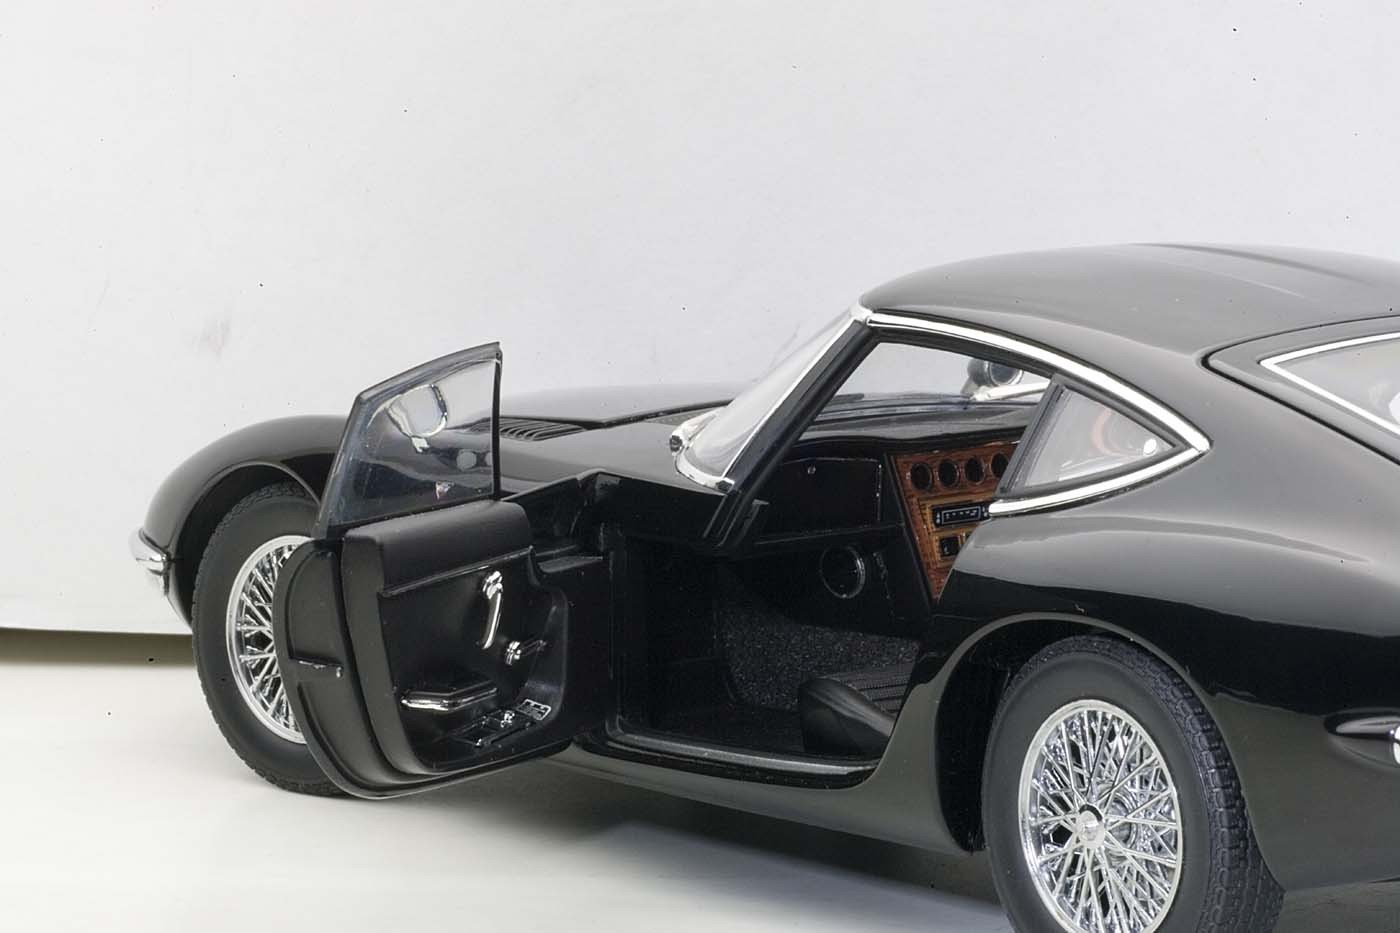 Autoart Die Cast Model Toyota 2000 Gt Upgraded Coupe Black